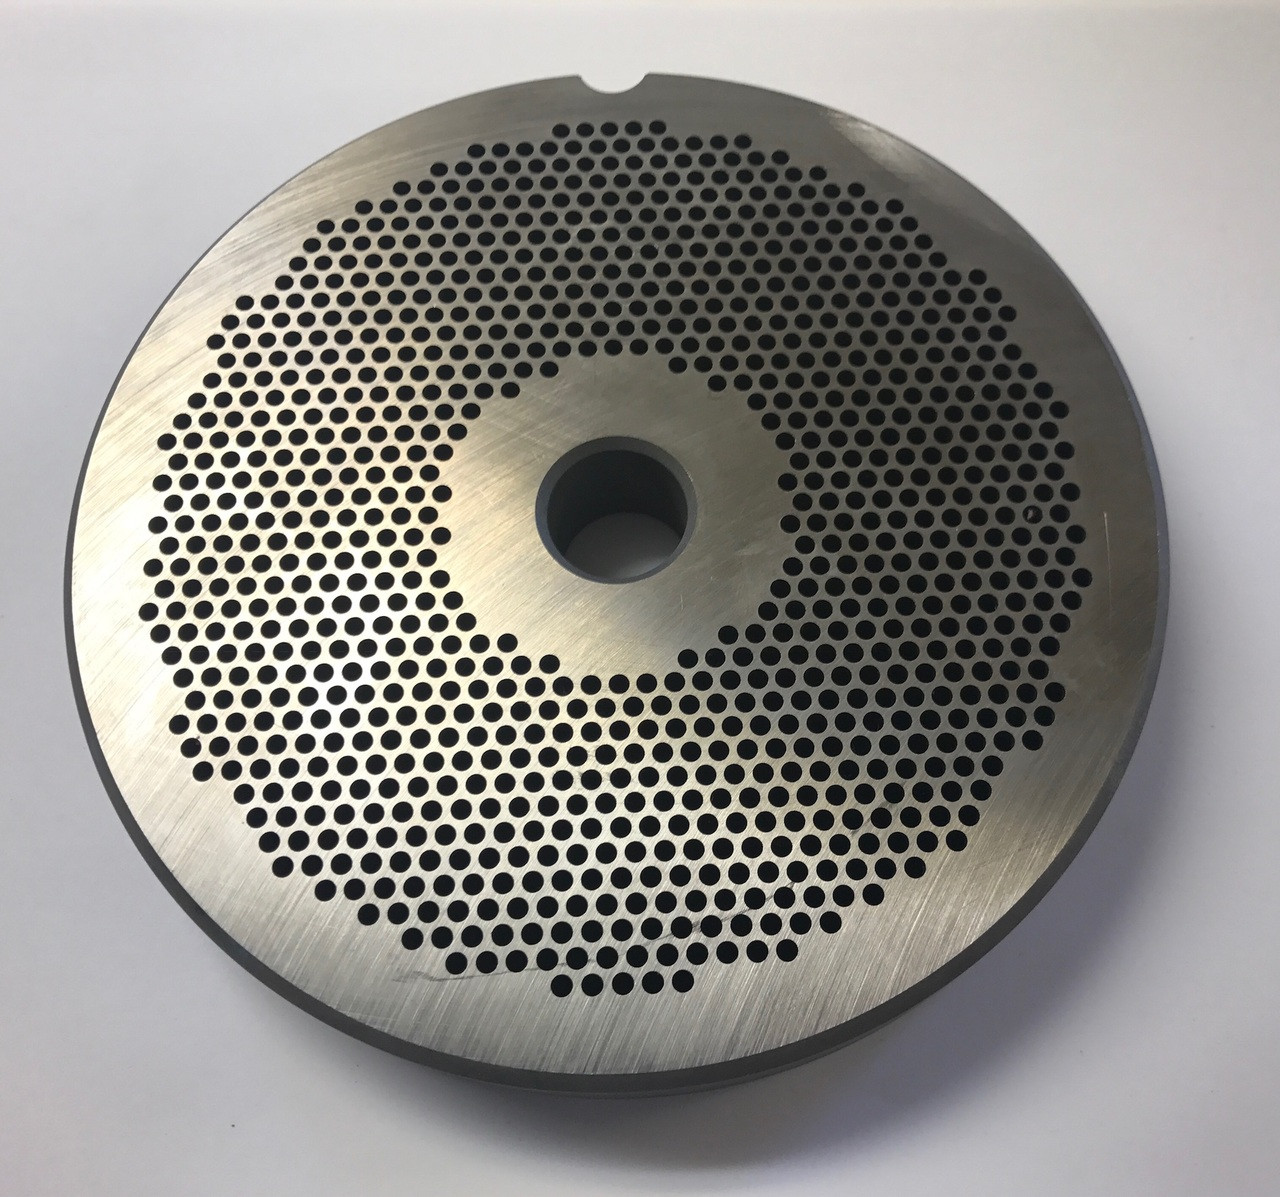 """#56 Speco Meat Grinder Plate with 7/64'' Holes - """"Reversible Plate"""""""